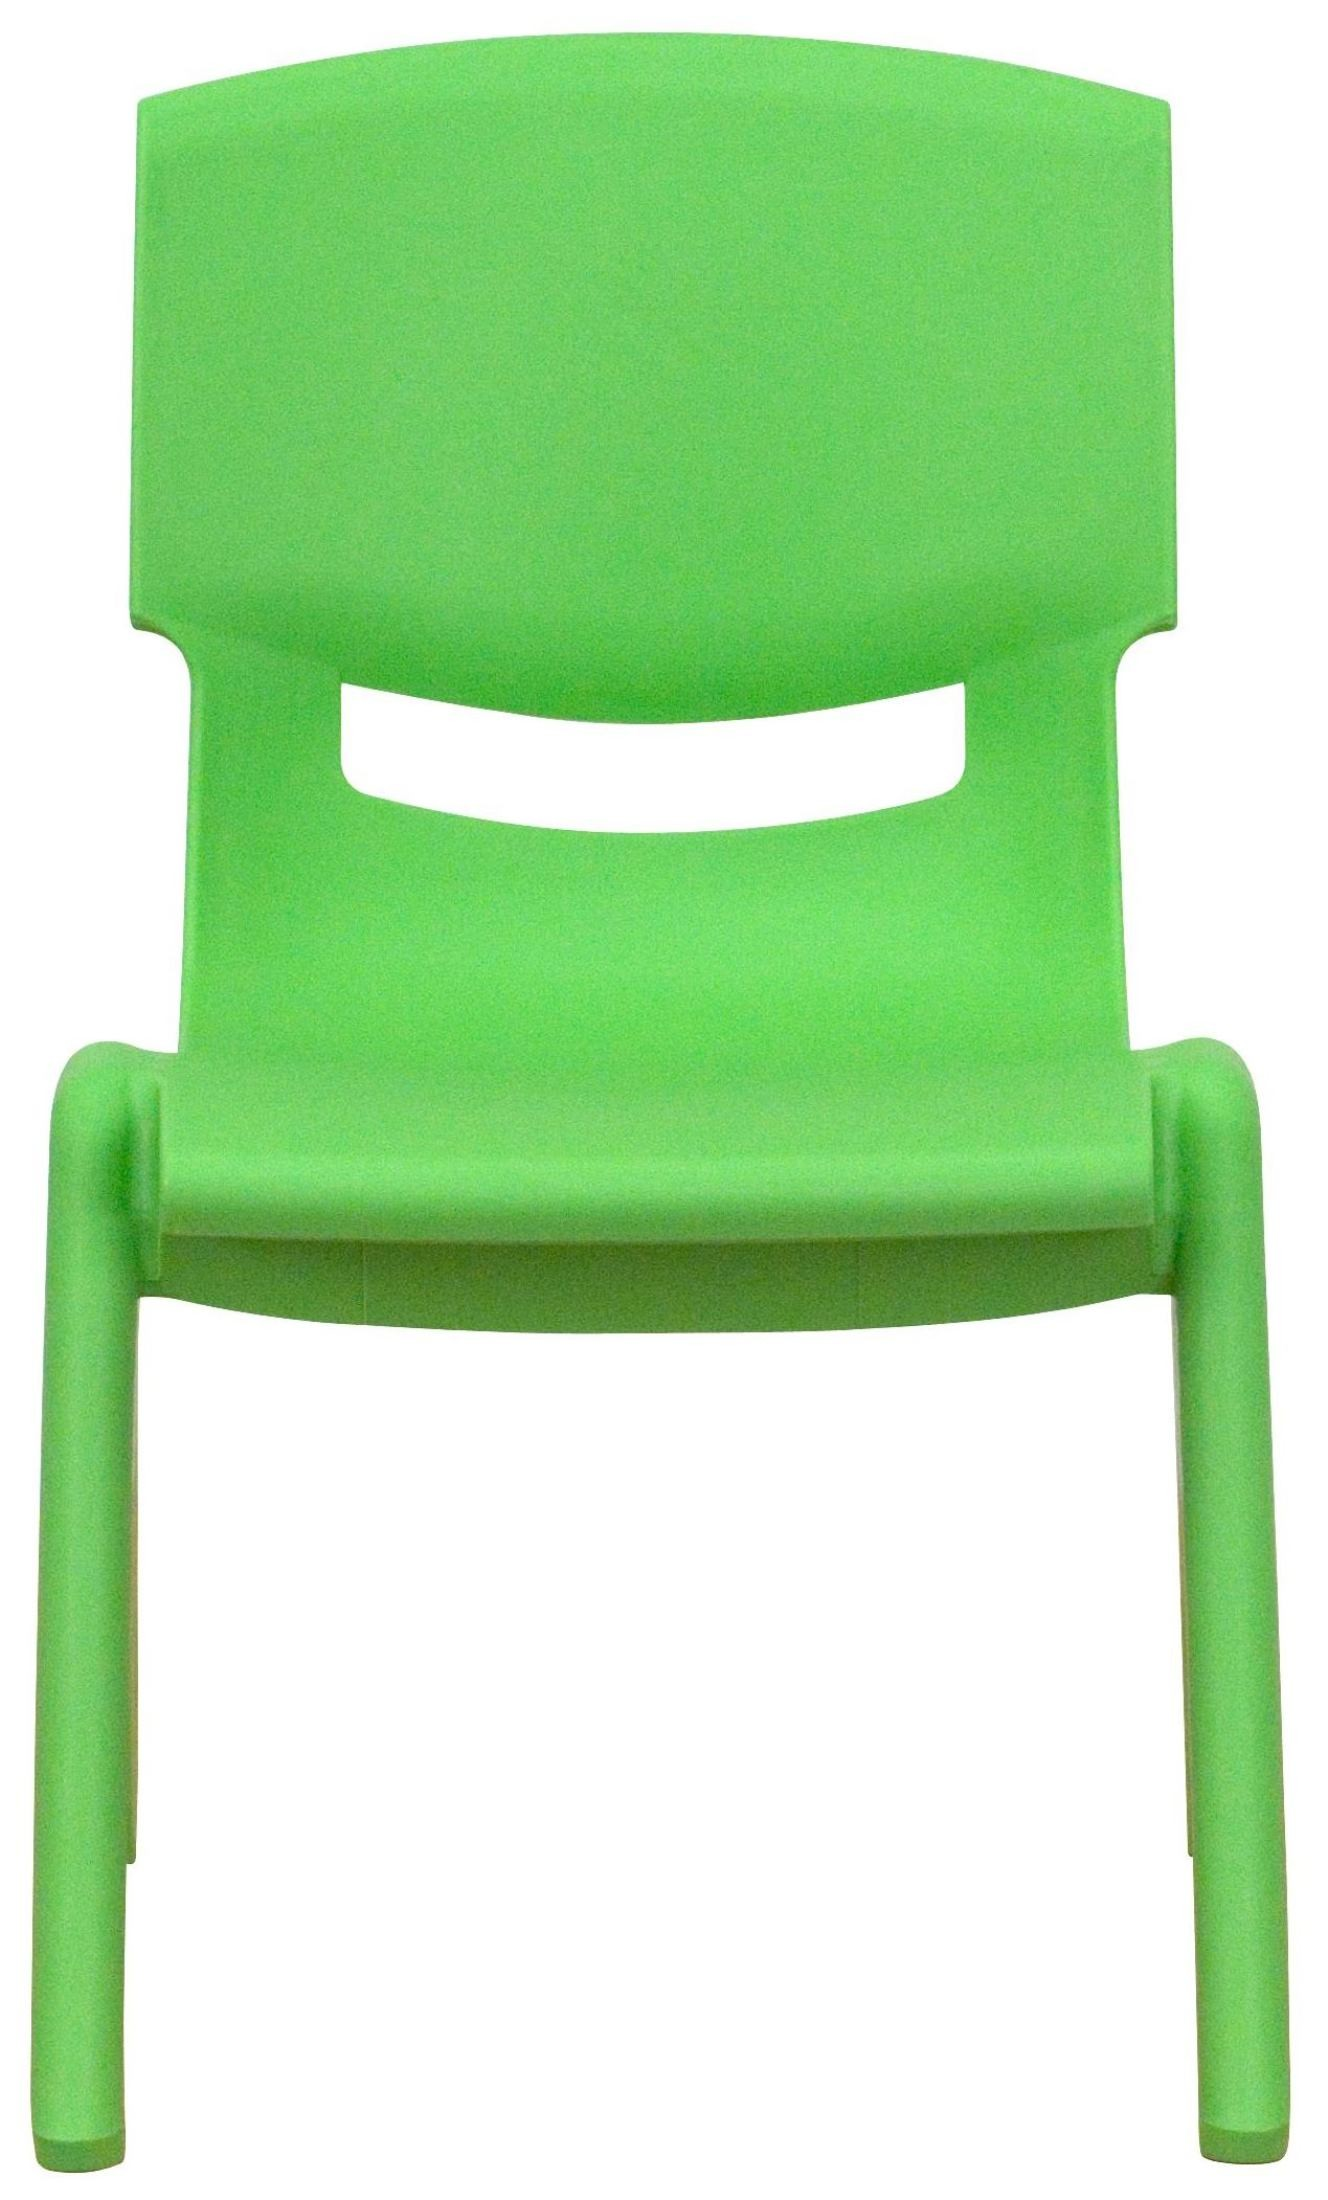 stackable resin chairs green glider on sale 20 quoth plastic school chair from renegade